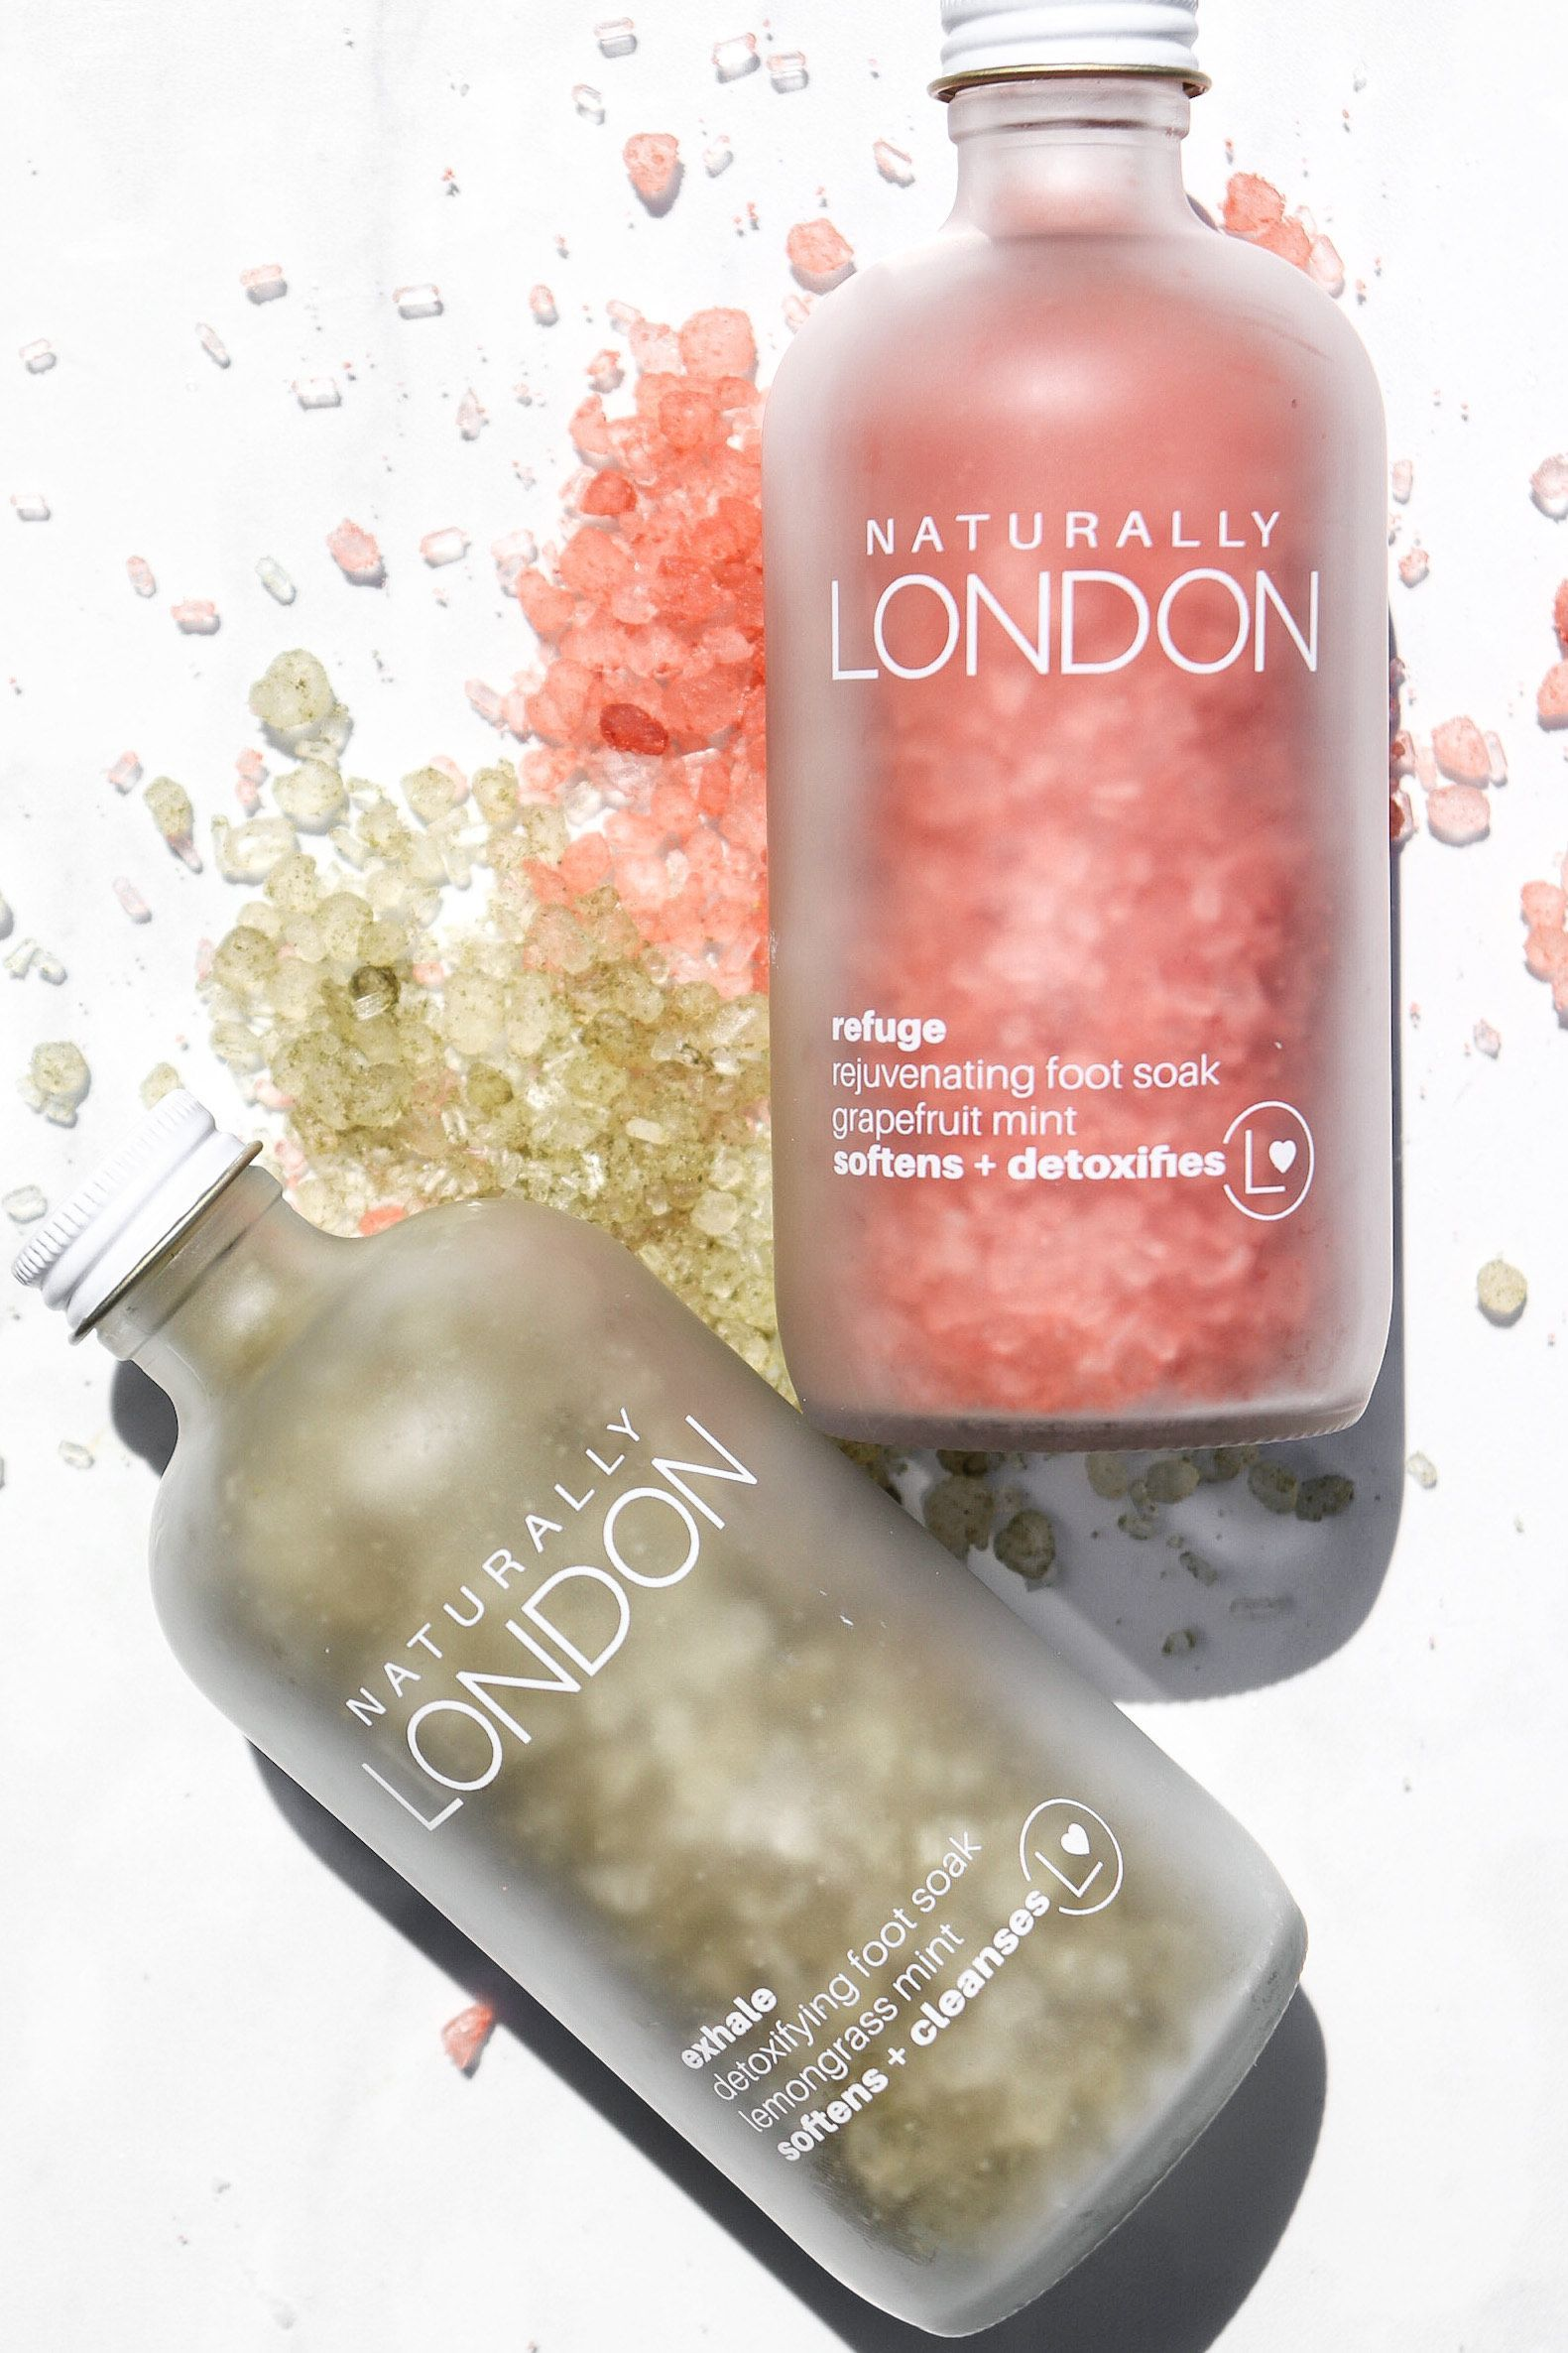 naturally london products